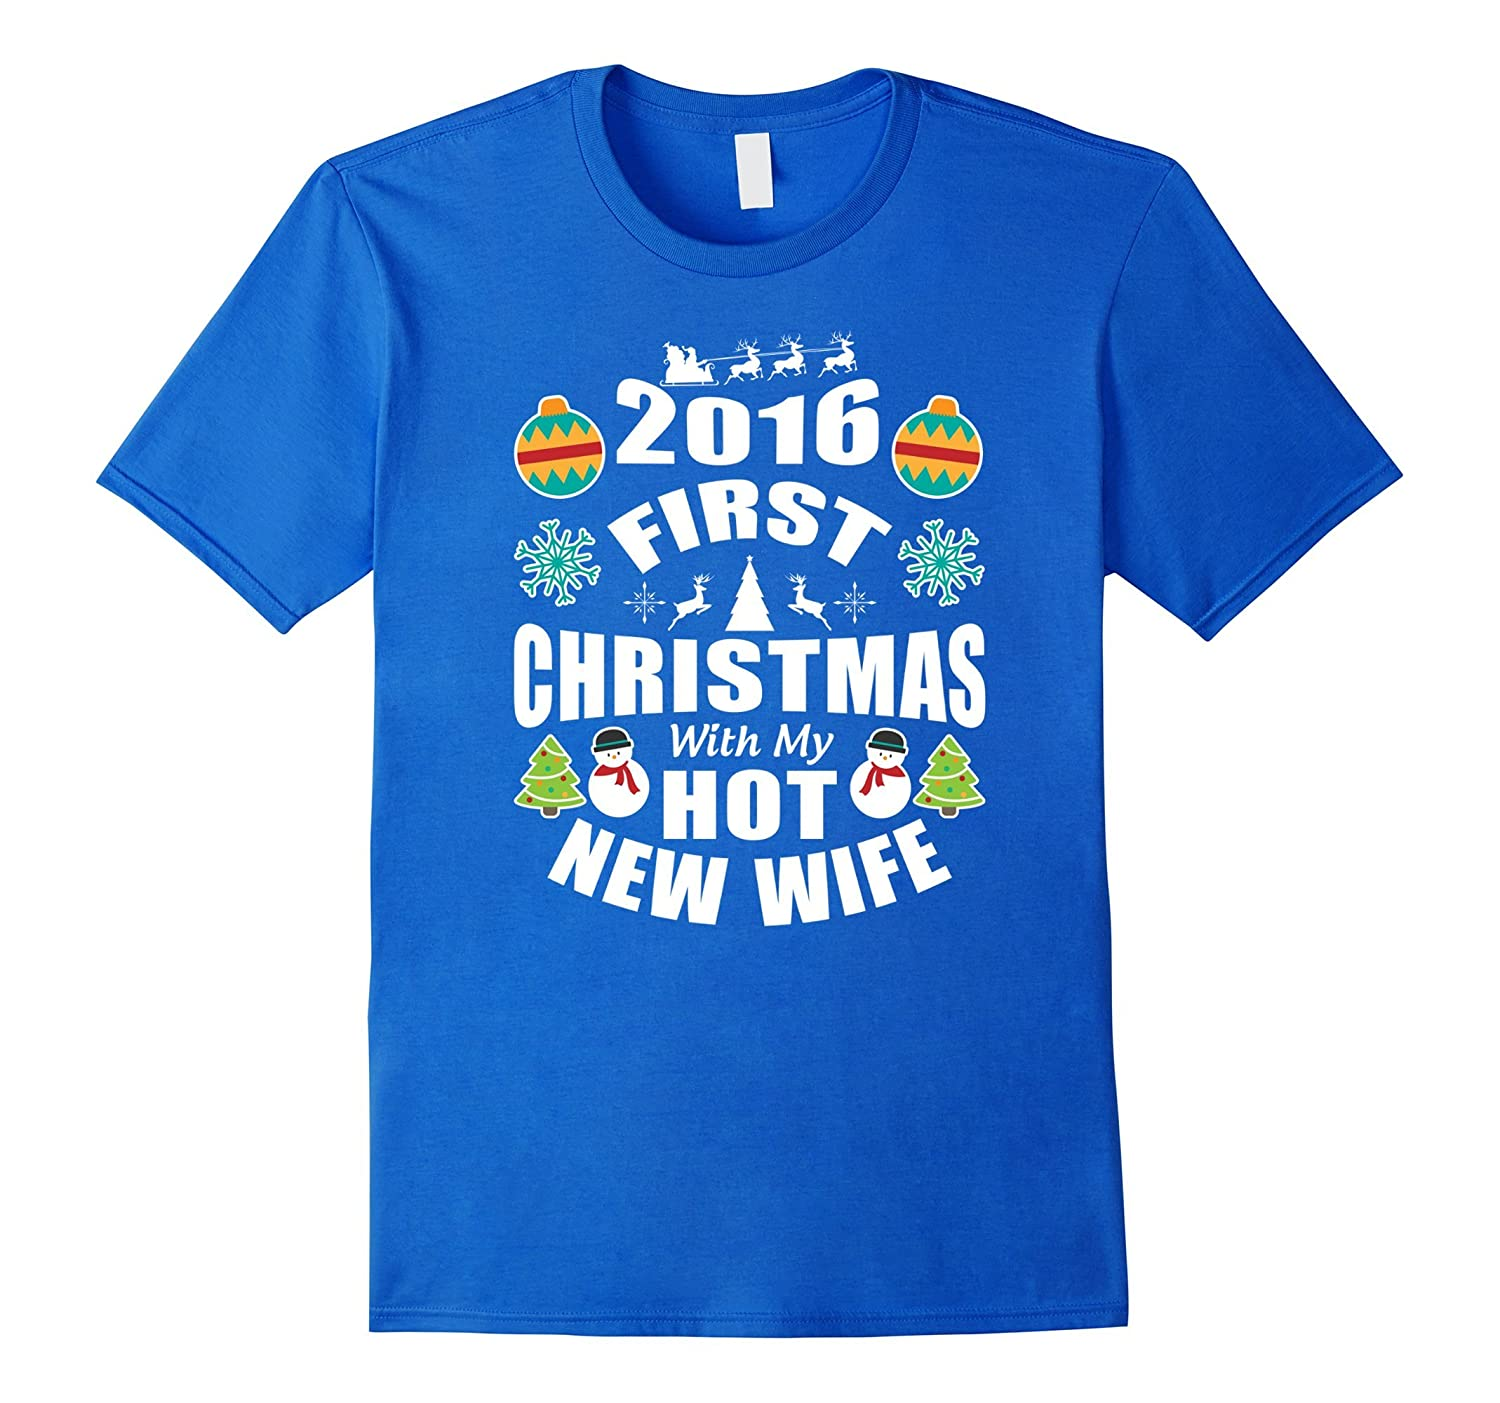 2016 First Christmas With My Hot New Wife Shirt